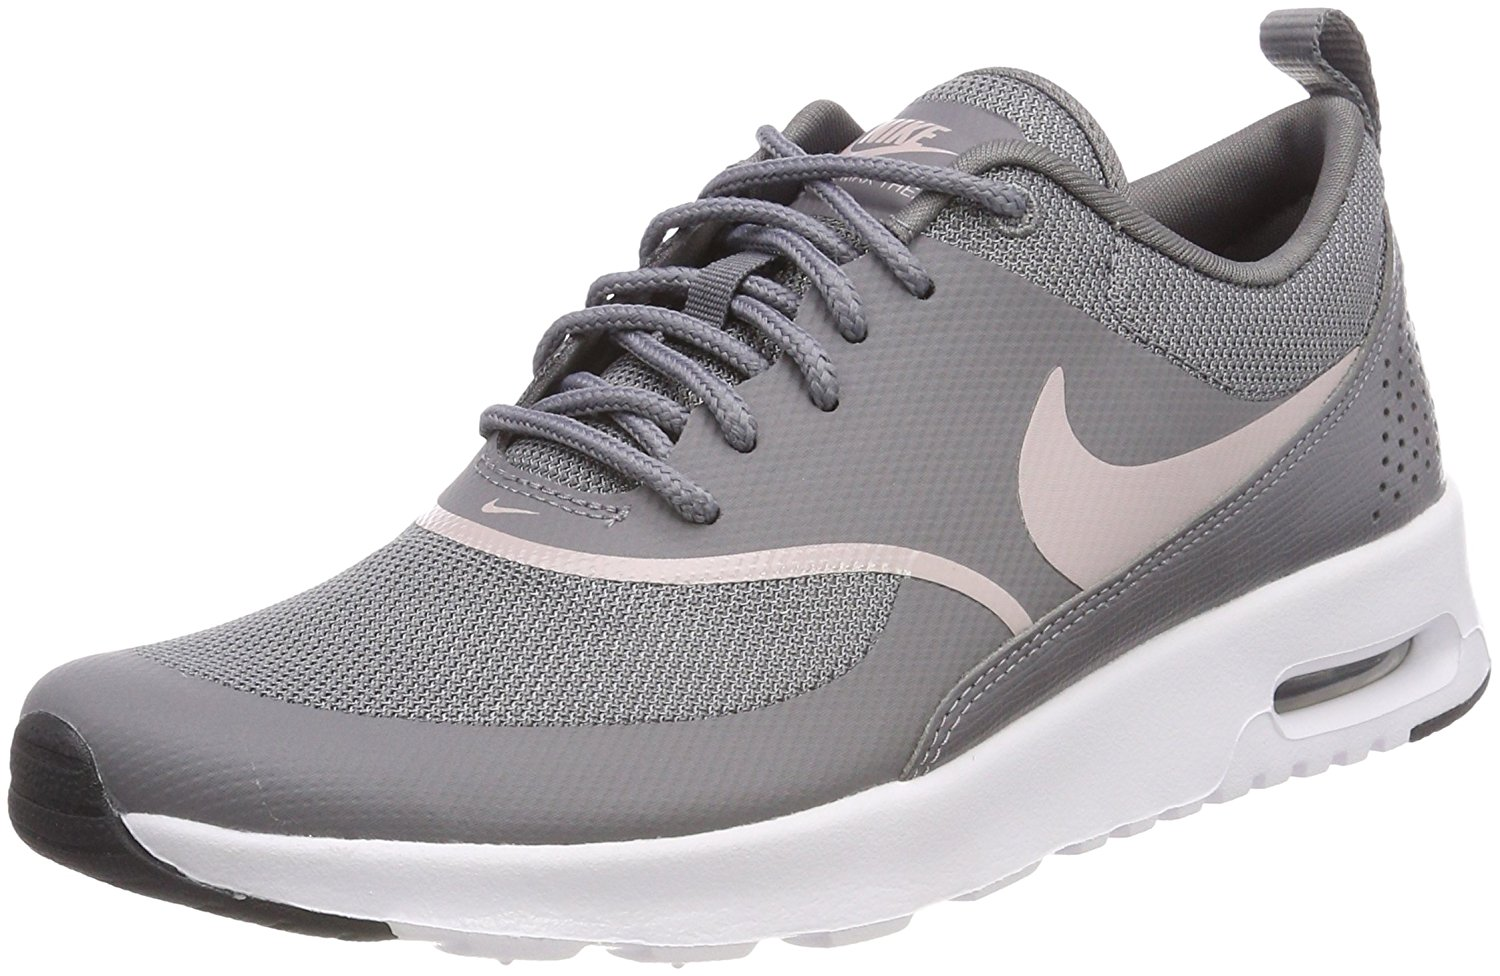 Air Max Running Nike Air Max Thea Running Shoes Reviewed